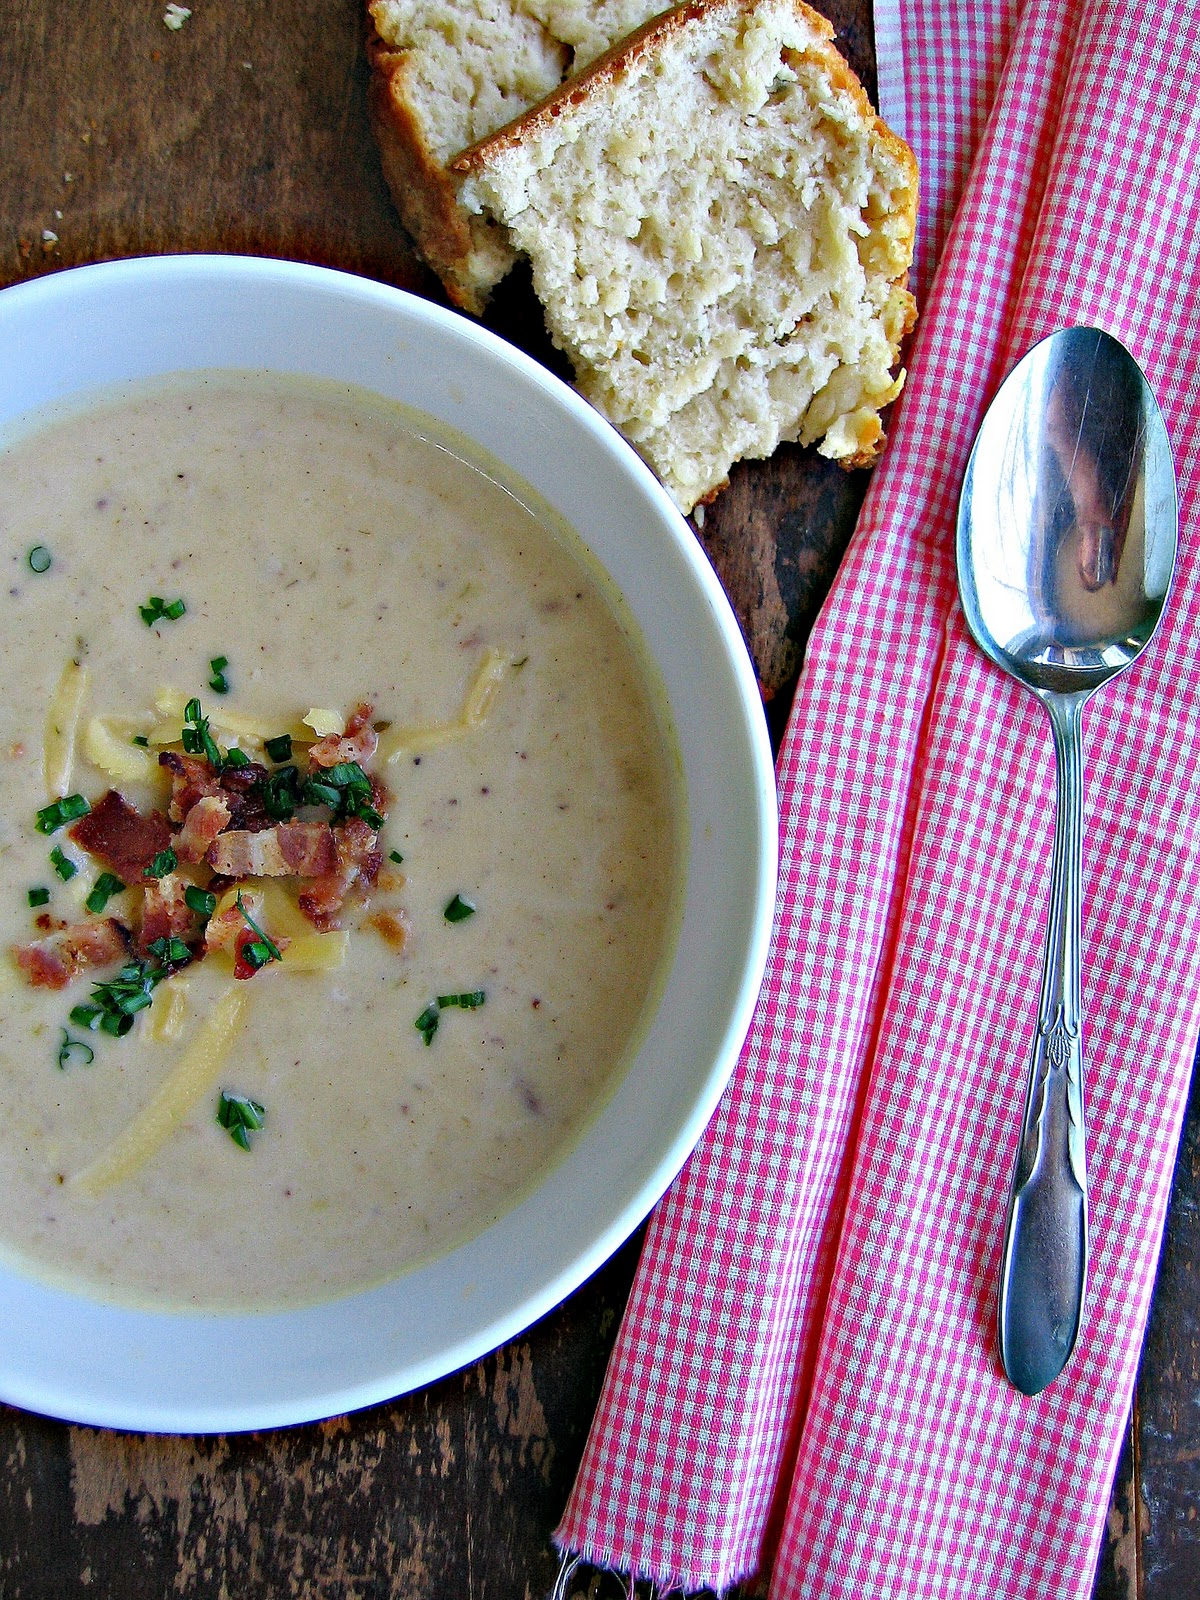 sweetsugarbean: Bacon, Potato & Leek Soup with Rosemary Beer Bread